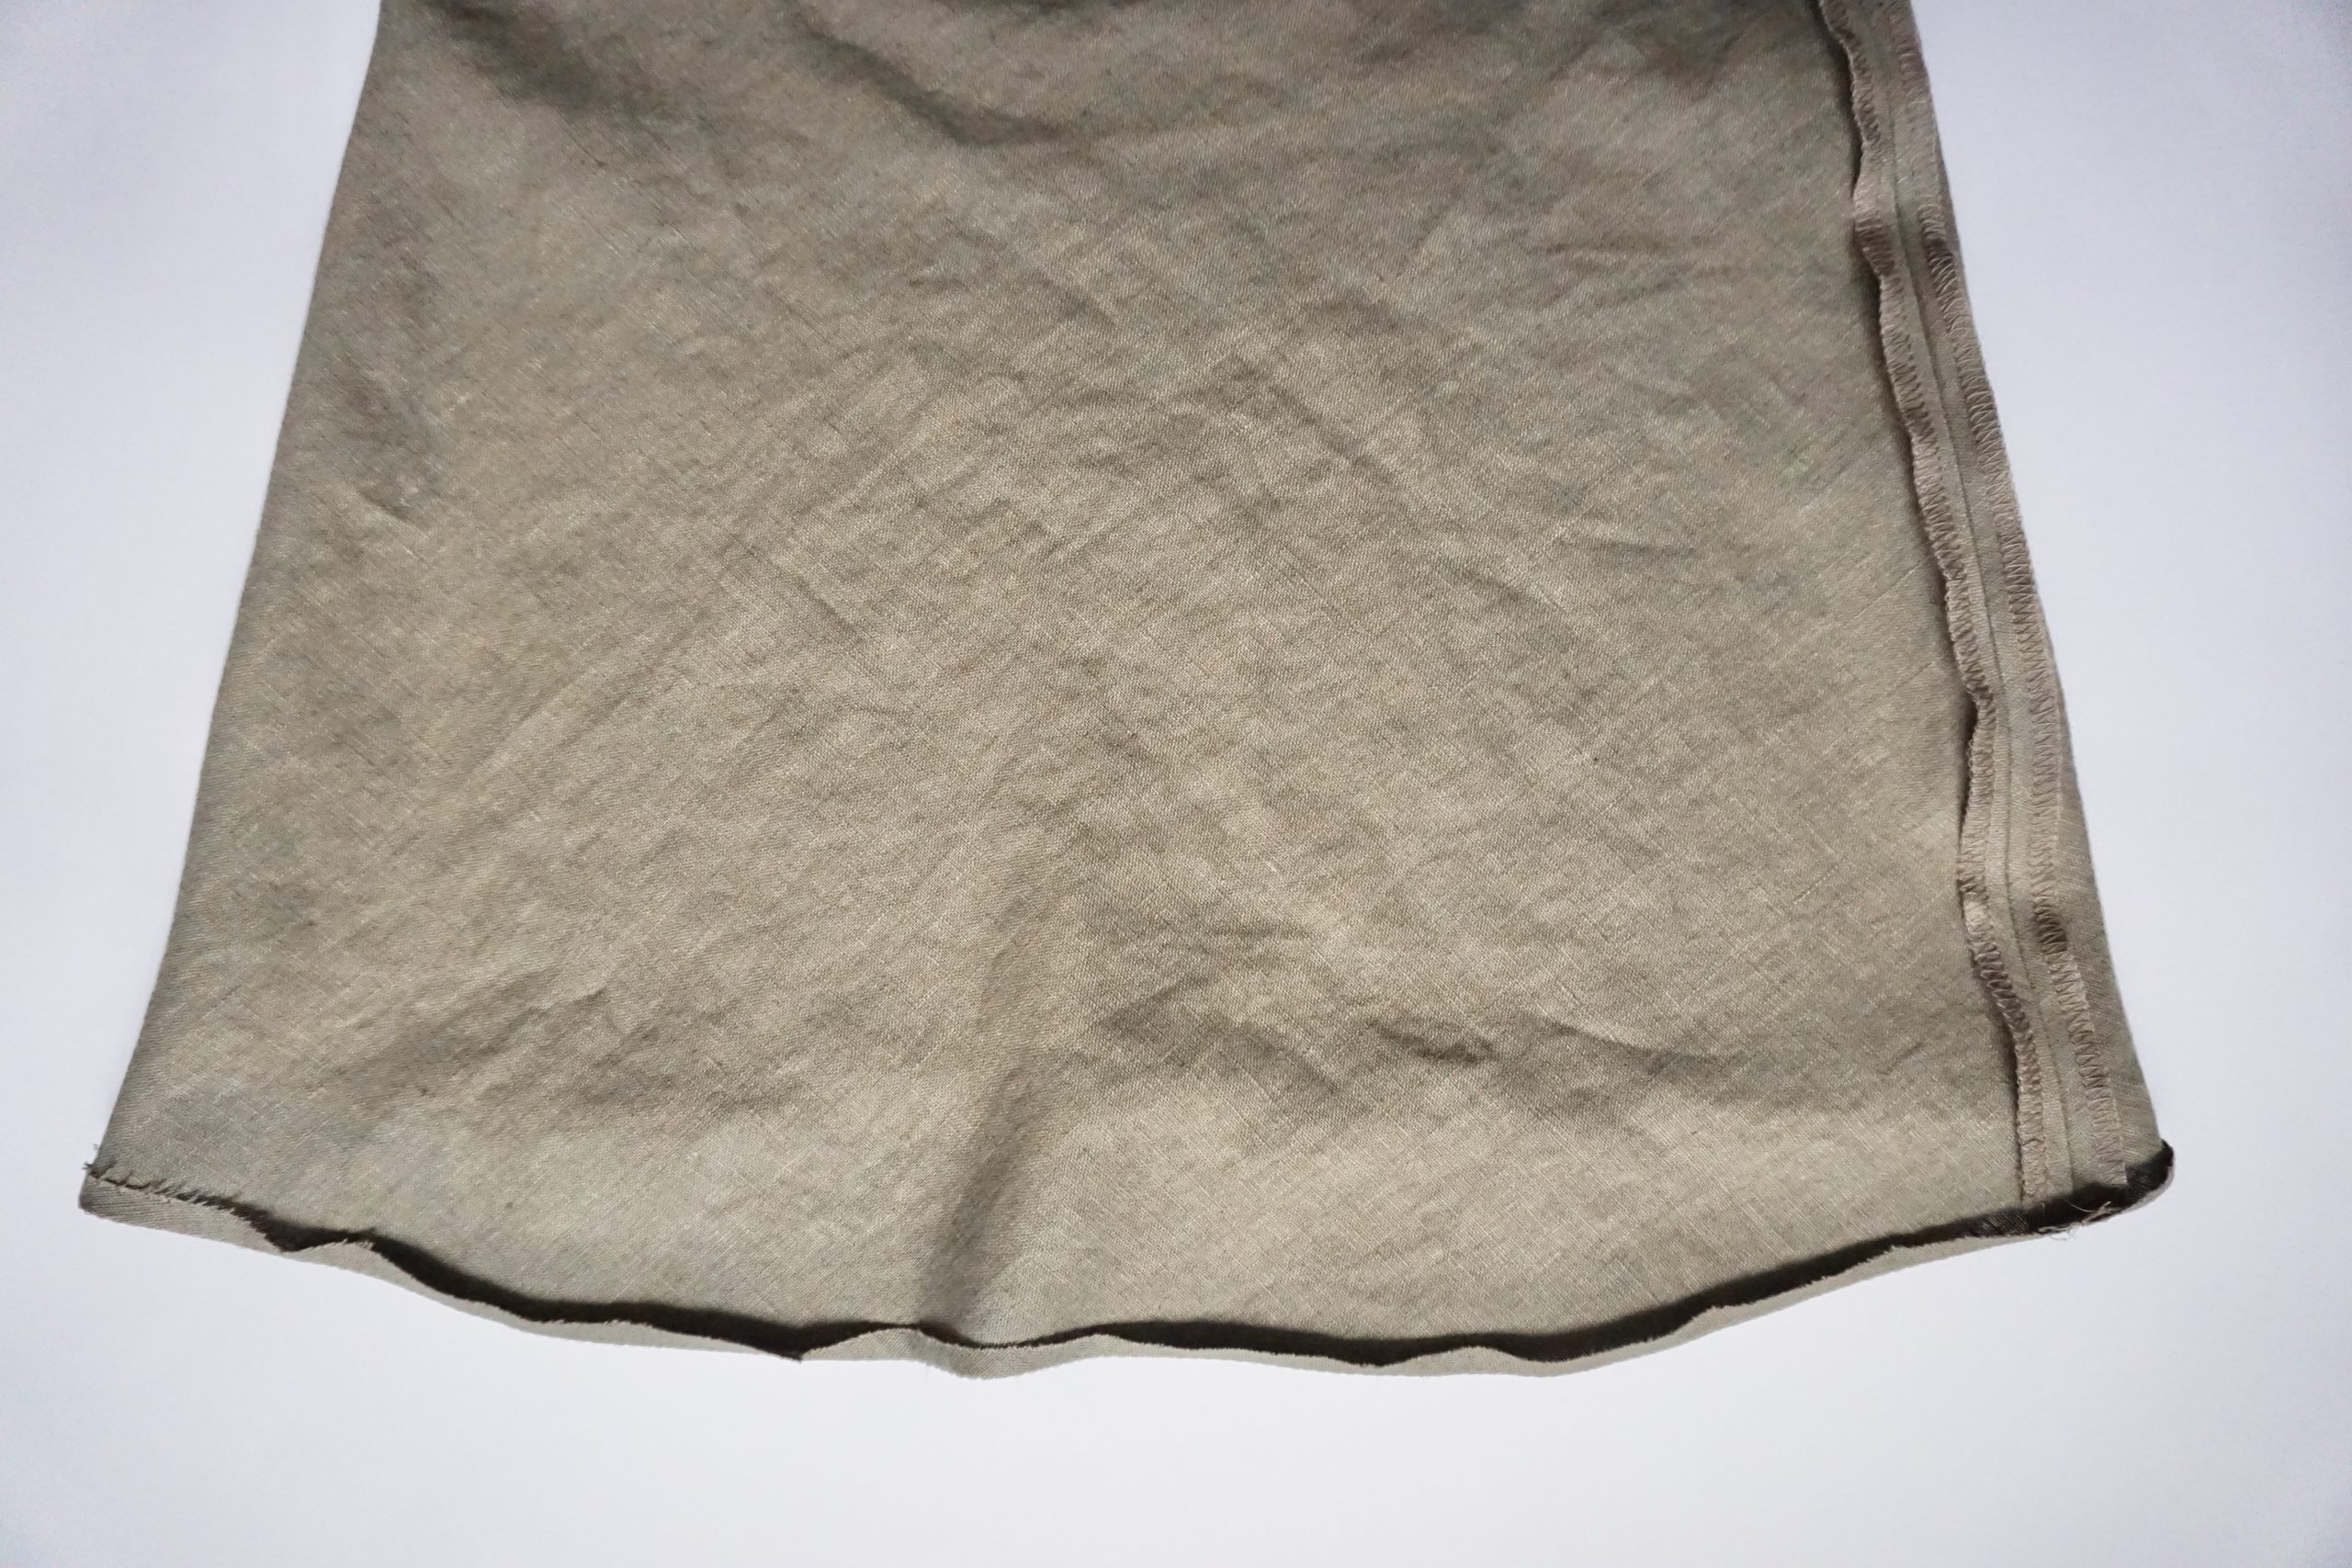 Fold the hem inwards towards the wrong side of the fabric along the line of stitching.